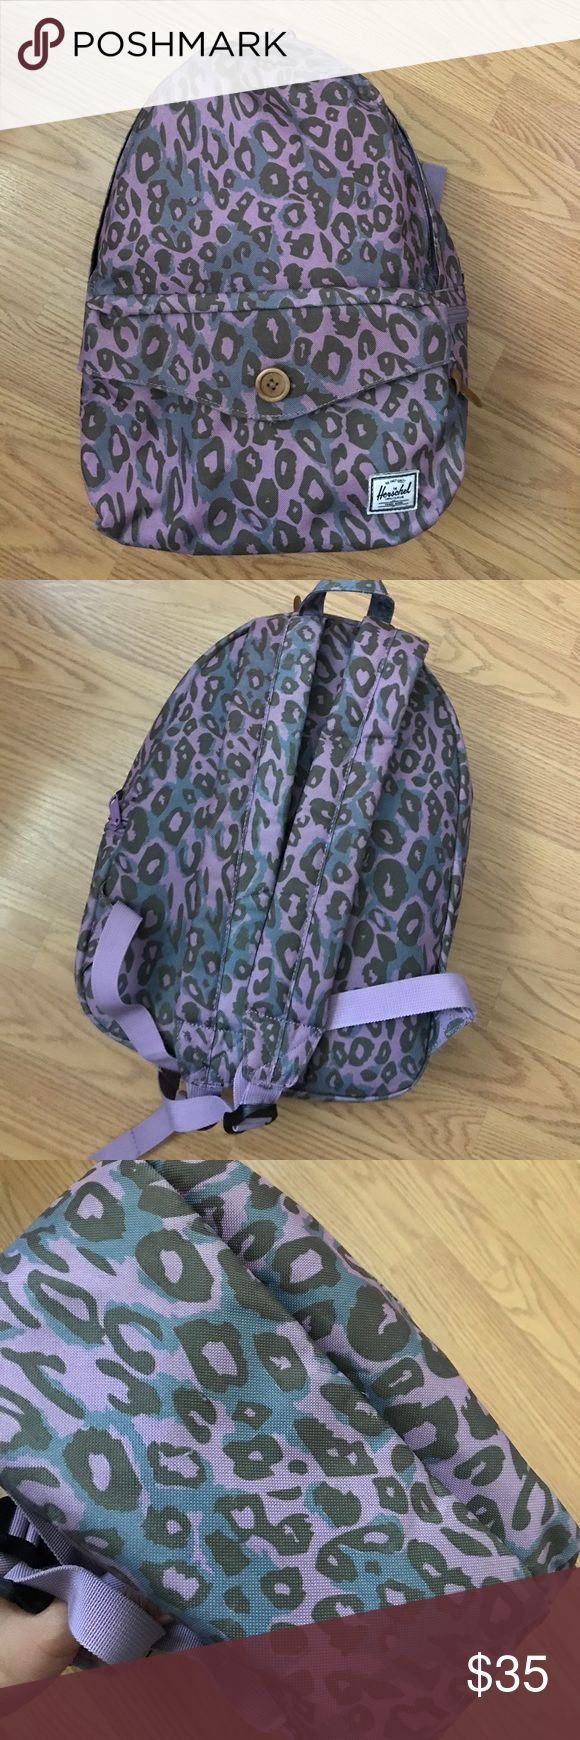 Backpack Herschel women's backpack. In great condition, hardly used! Price is firm, no trade! Herschel Supply Company Bags Backpacks